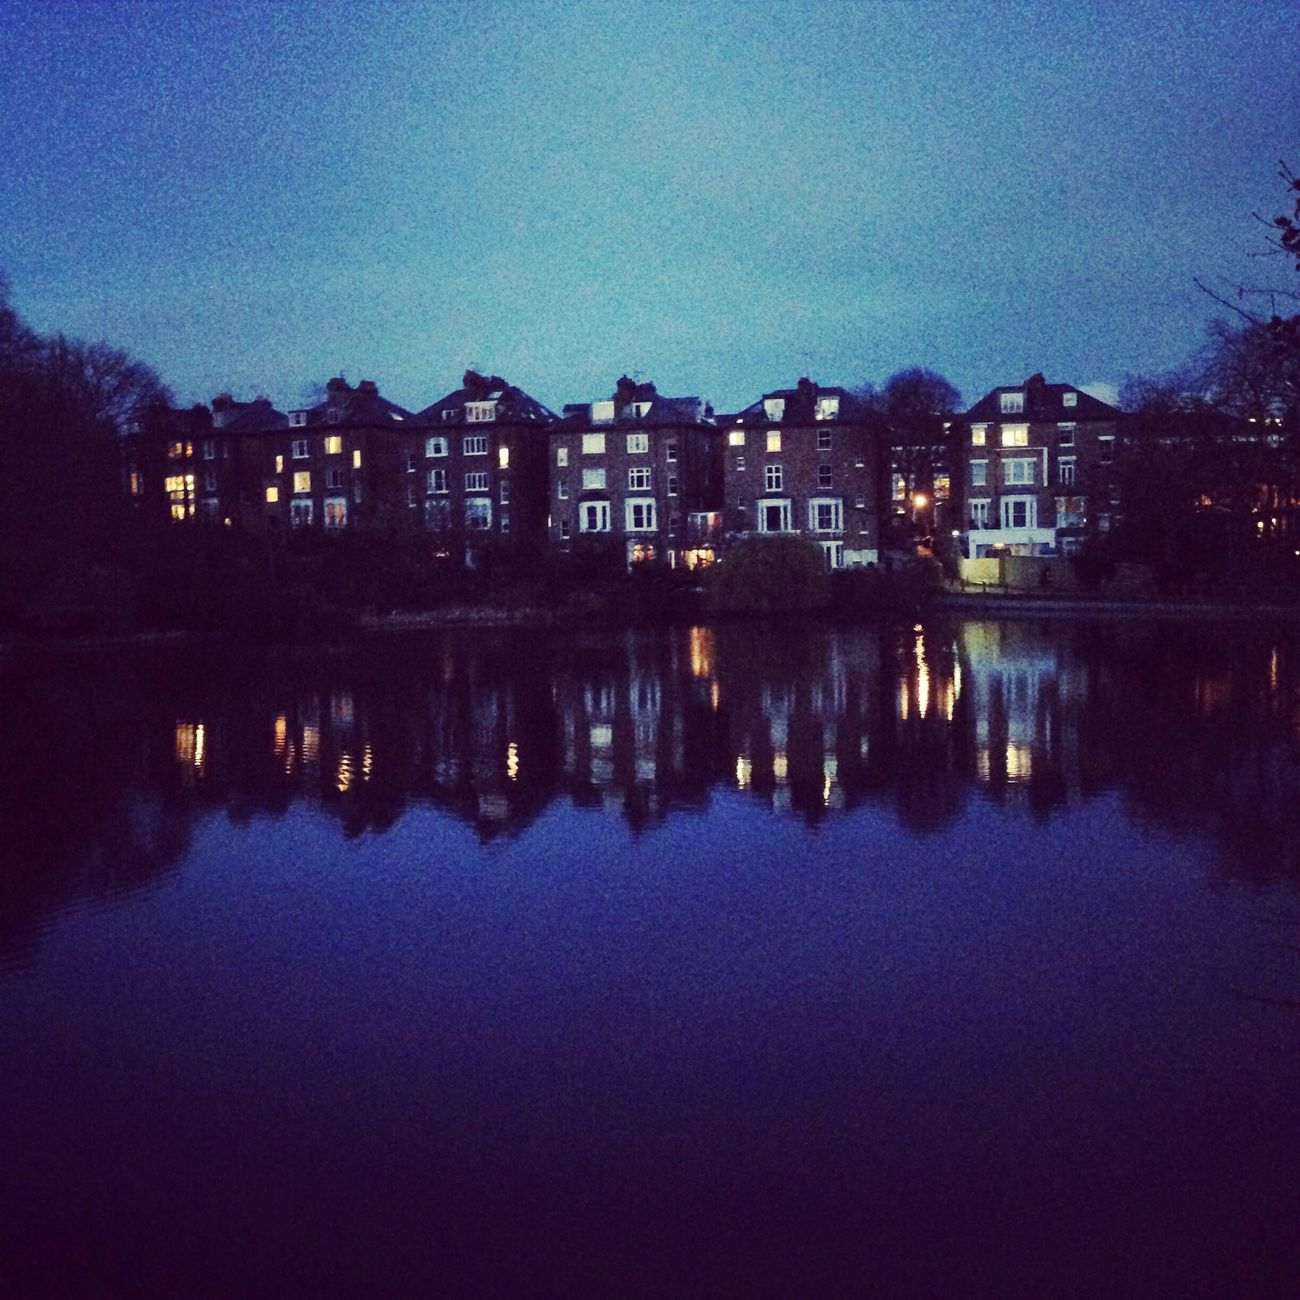 Past Sunset in Hampstead Heath Reflection of Houses